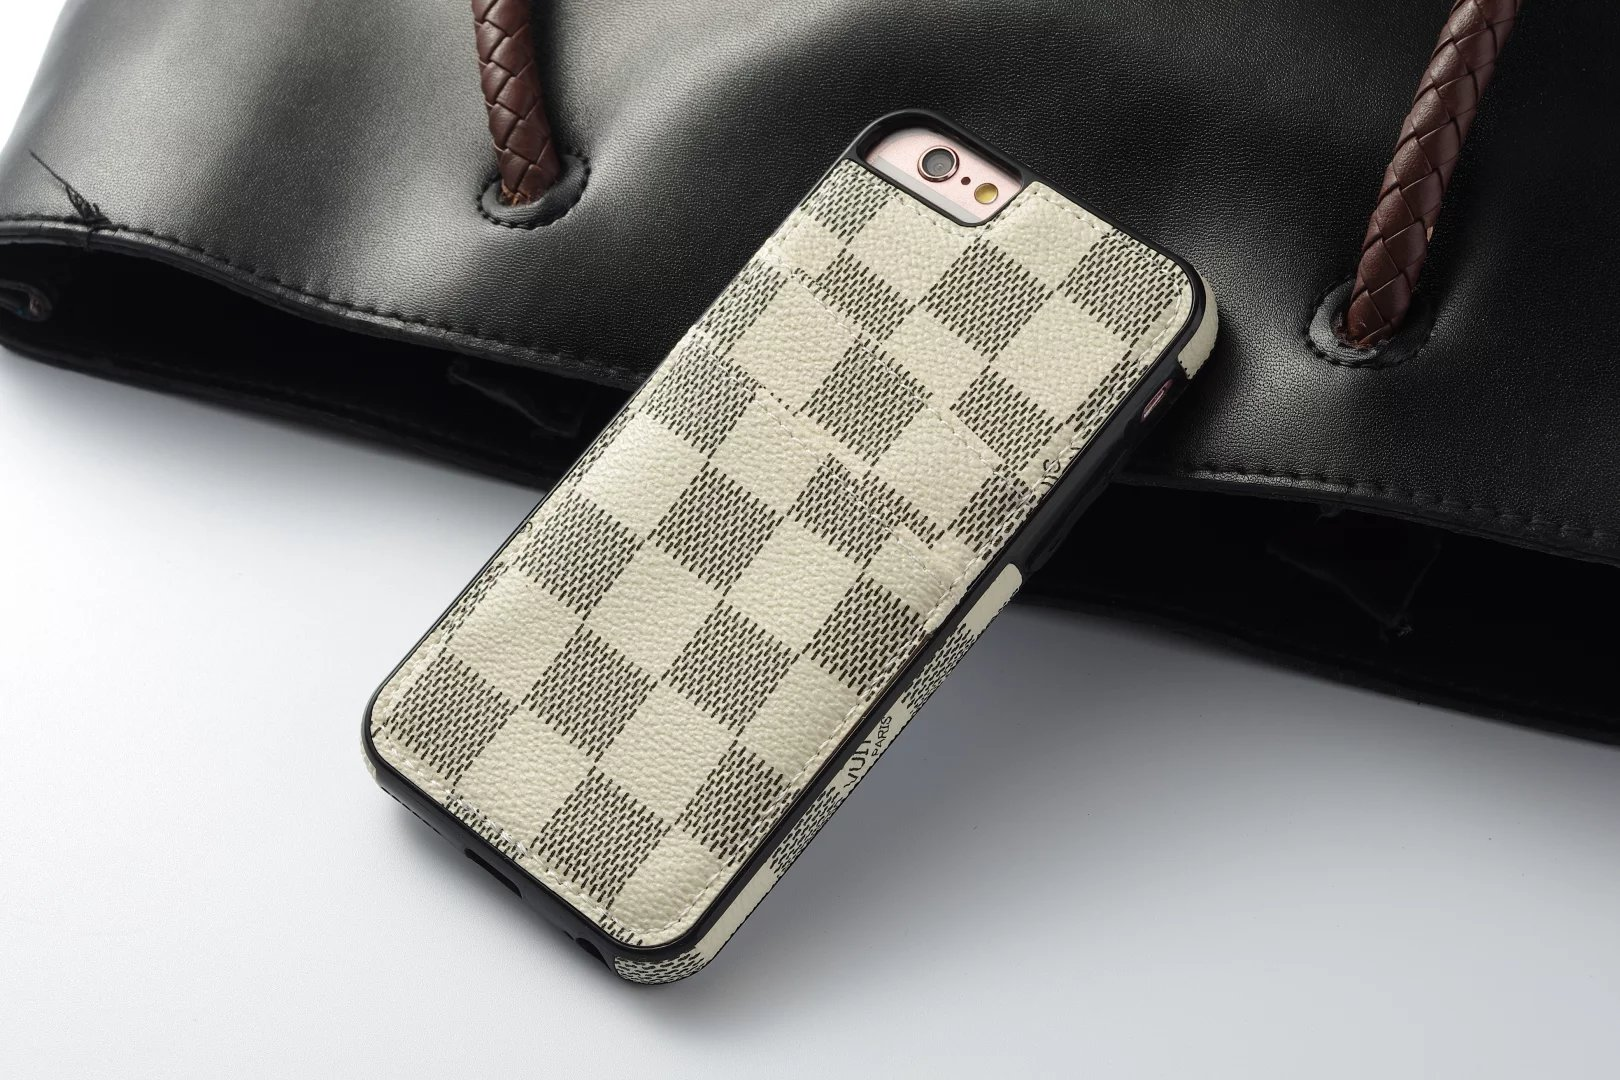 foto iphone hülle iphone handyhülle Louis Vuitton iphone 8 Plus hüllen coole handyhüllen iphone 8 Plus 8 Plus fotos samsung gala8 Plusy oder iphone iphone ca8 Plus 8 Pluslber machen iphone lederhülle coole iphone 8 Plus hüllen